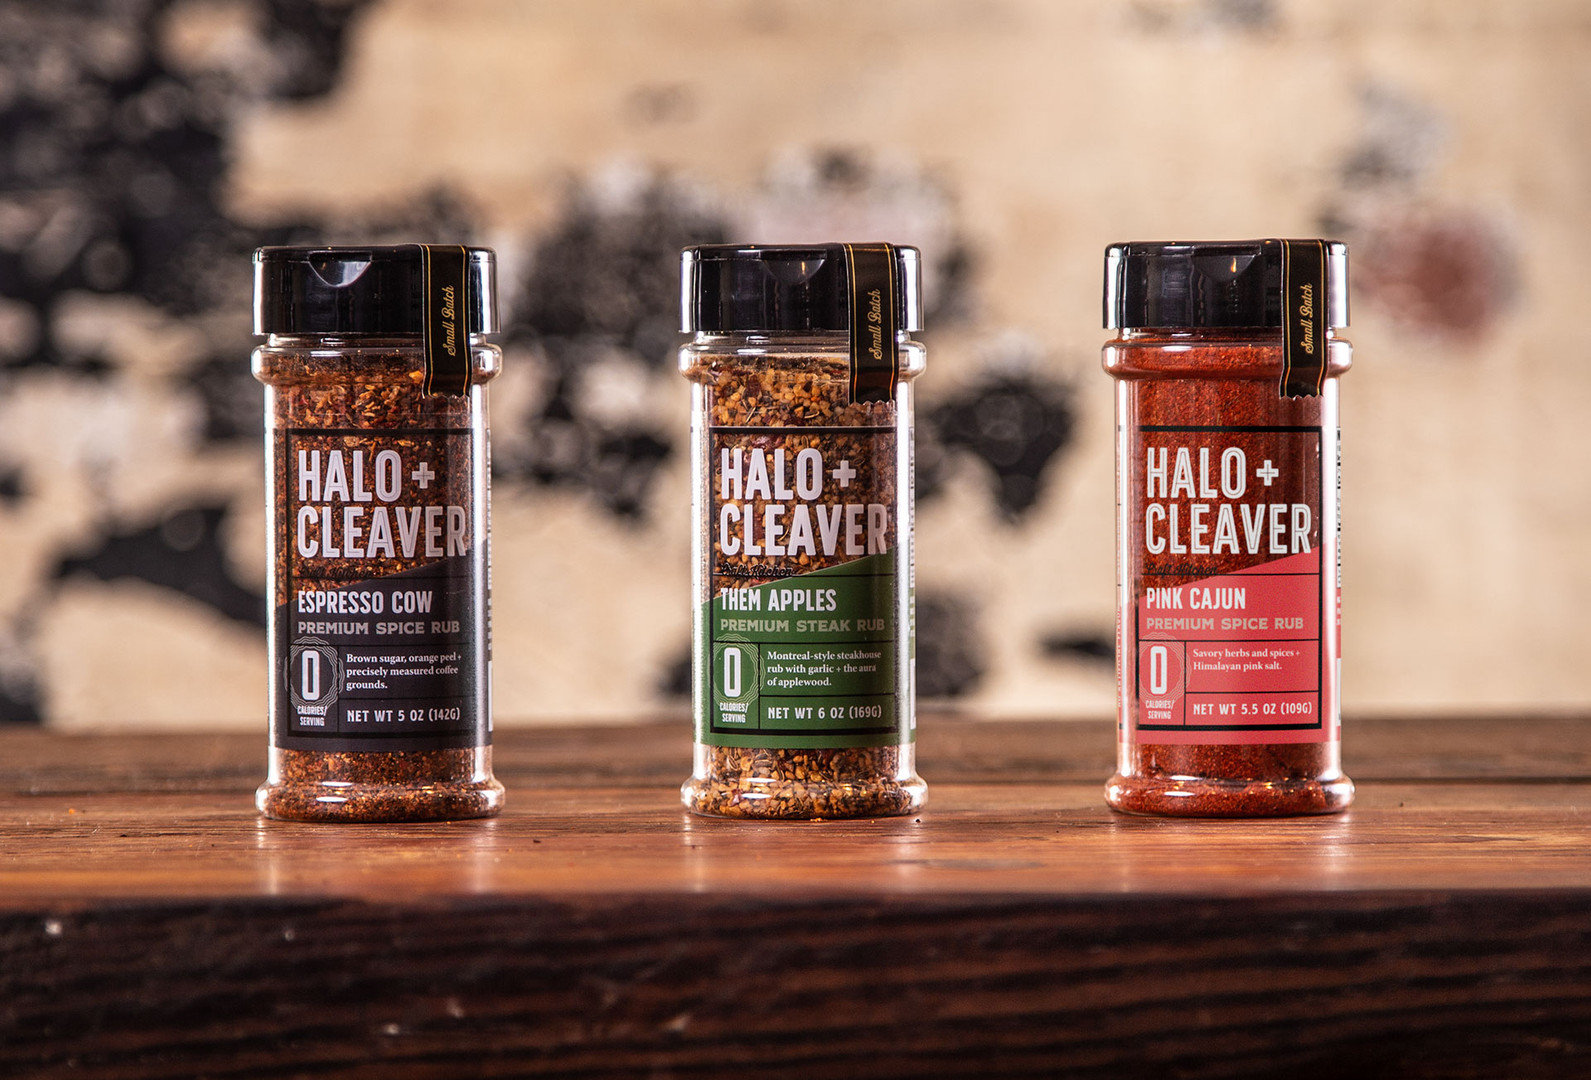 Halo + Cleaver Packaging, Spice Rubs